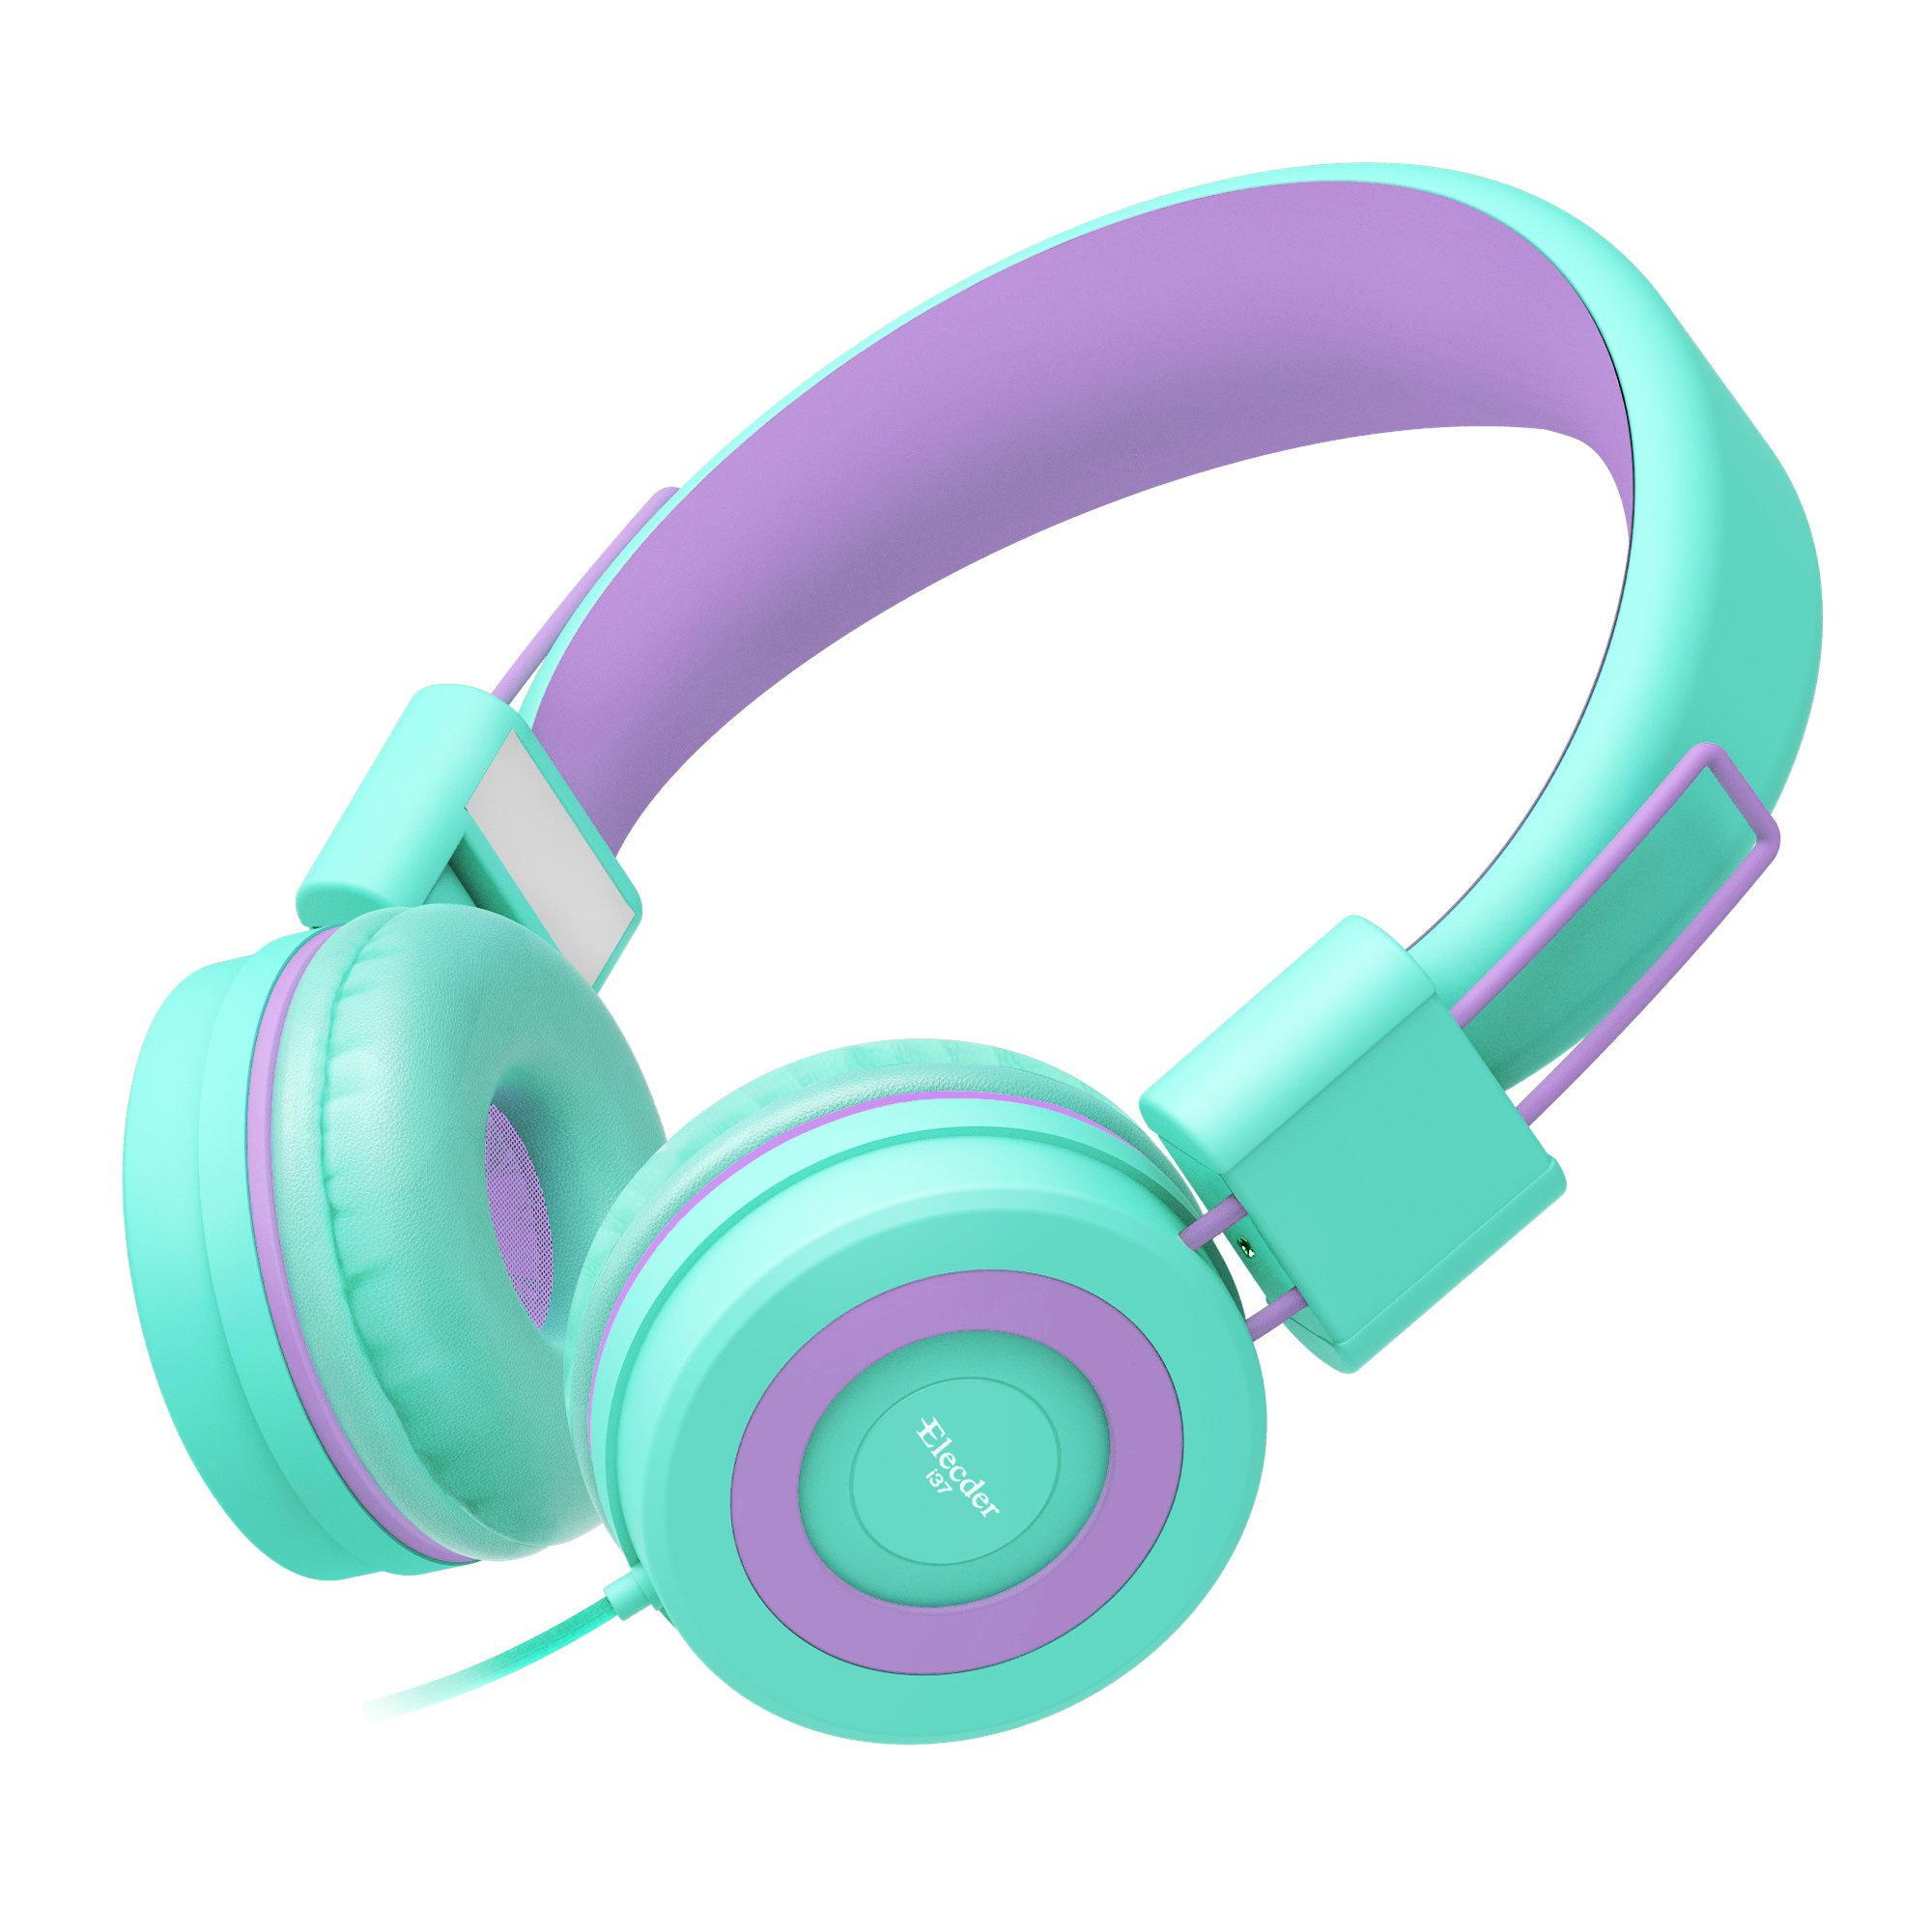 Elecder i37 Kids Headphones for Children, Girls, Boys, Teens, Adults, Foldable Adjustable Over Ear Headsets with 3.5mm Jack for iPad Cellphones Computer MP3/4 Kindle Airplane School(Green/Purple) by ELECDER